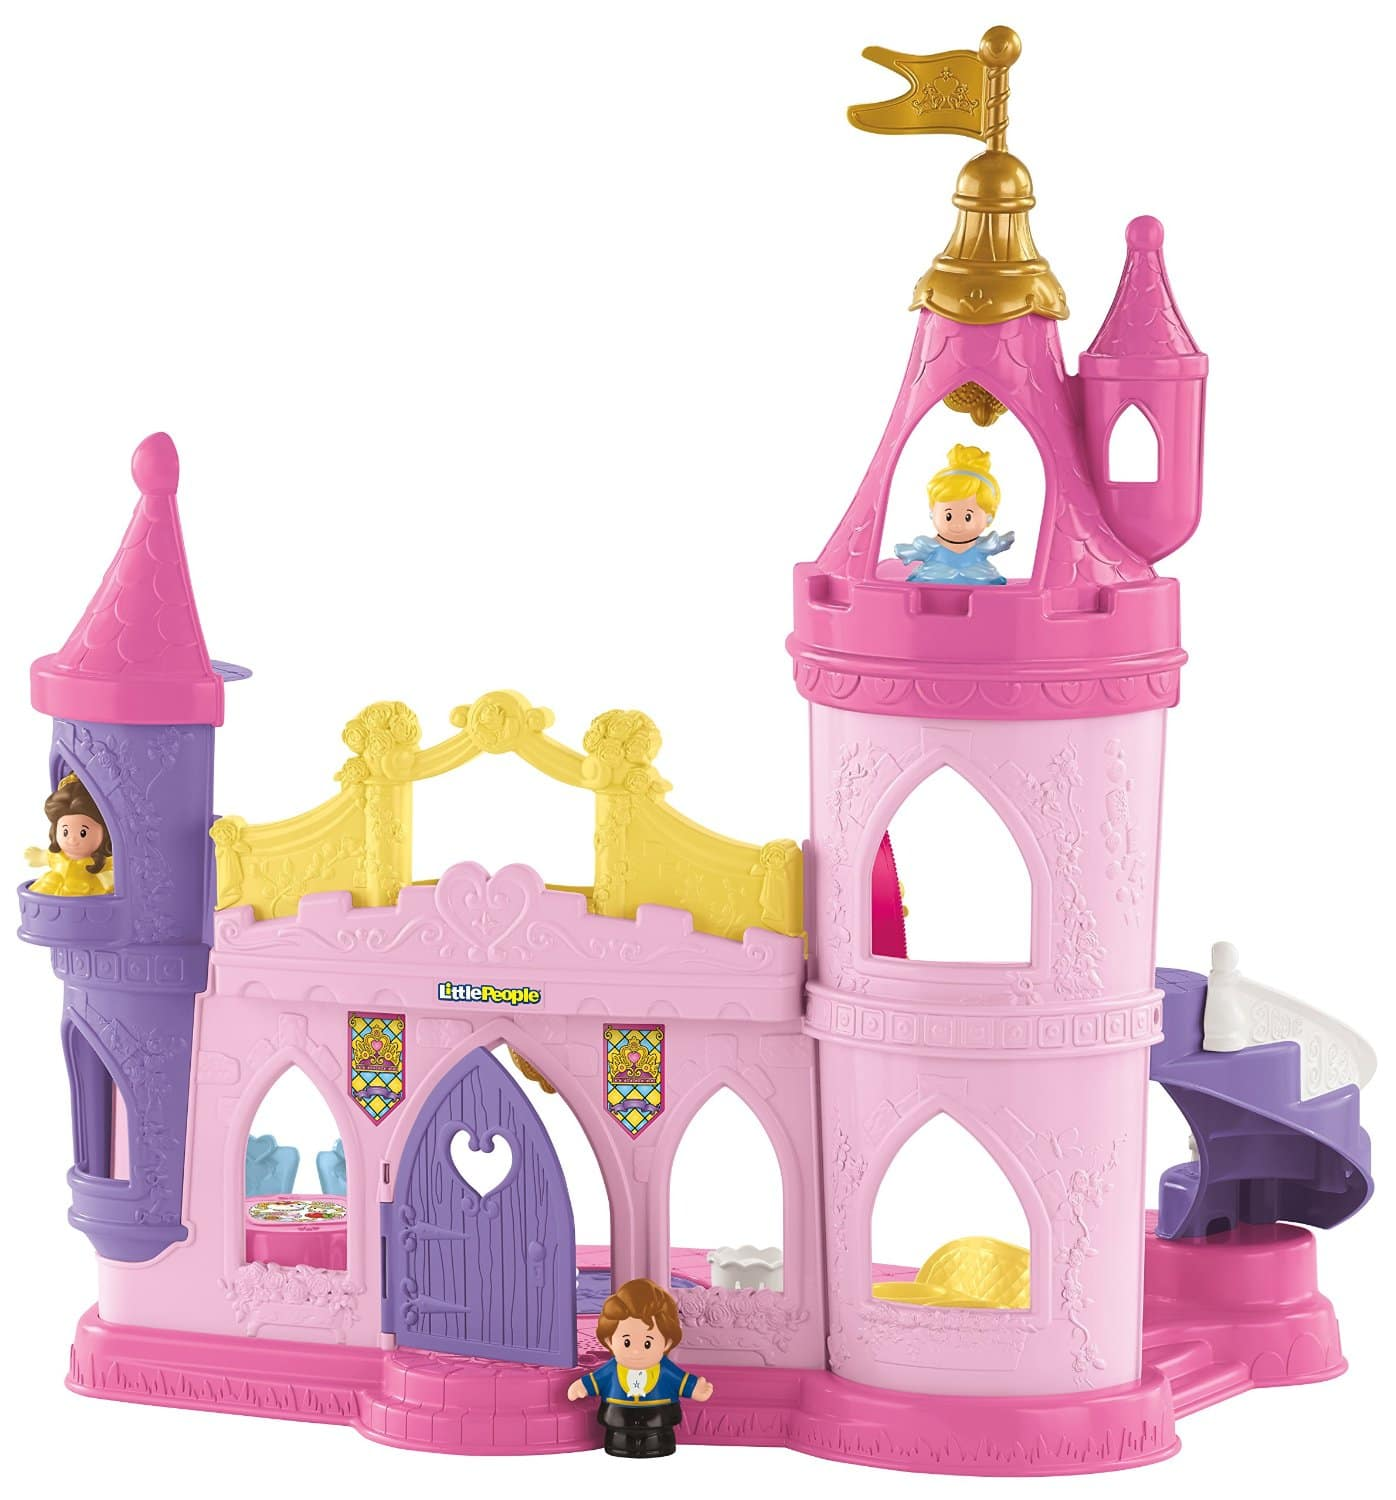 Fisher-Price Little People Disney Princess Musical Dancing Palace  $18.40 + Free Store Pickup